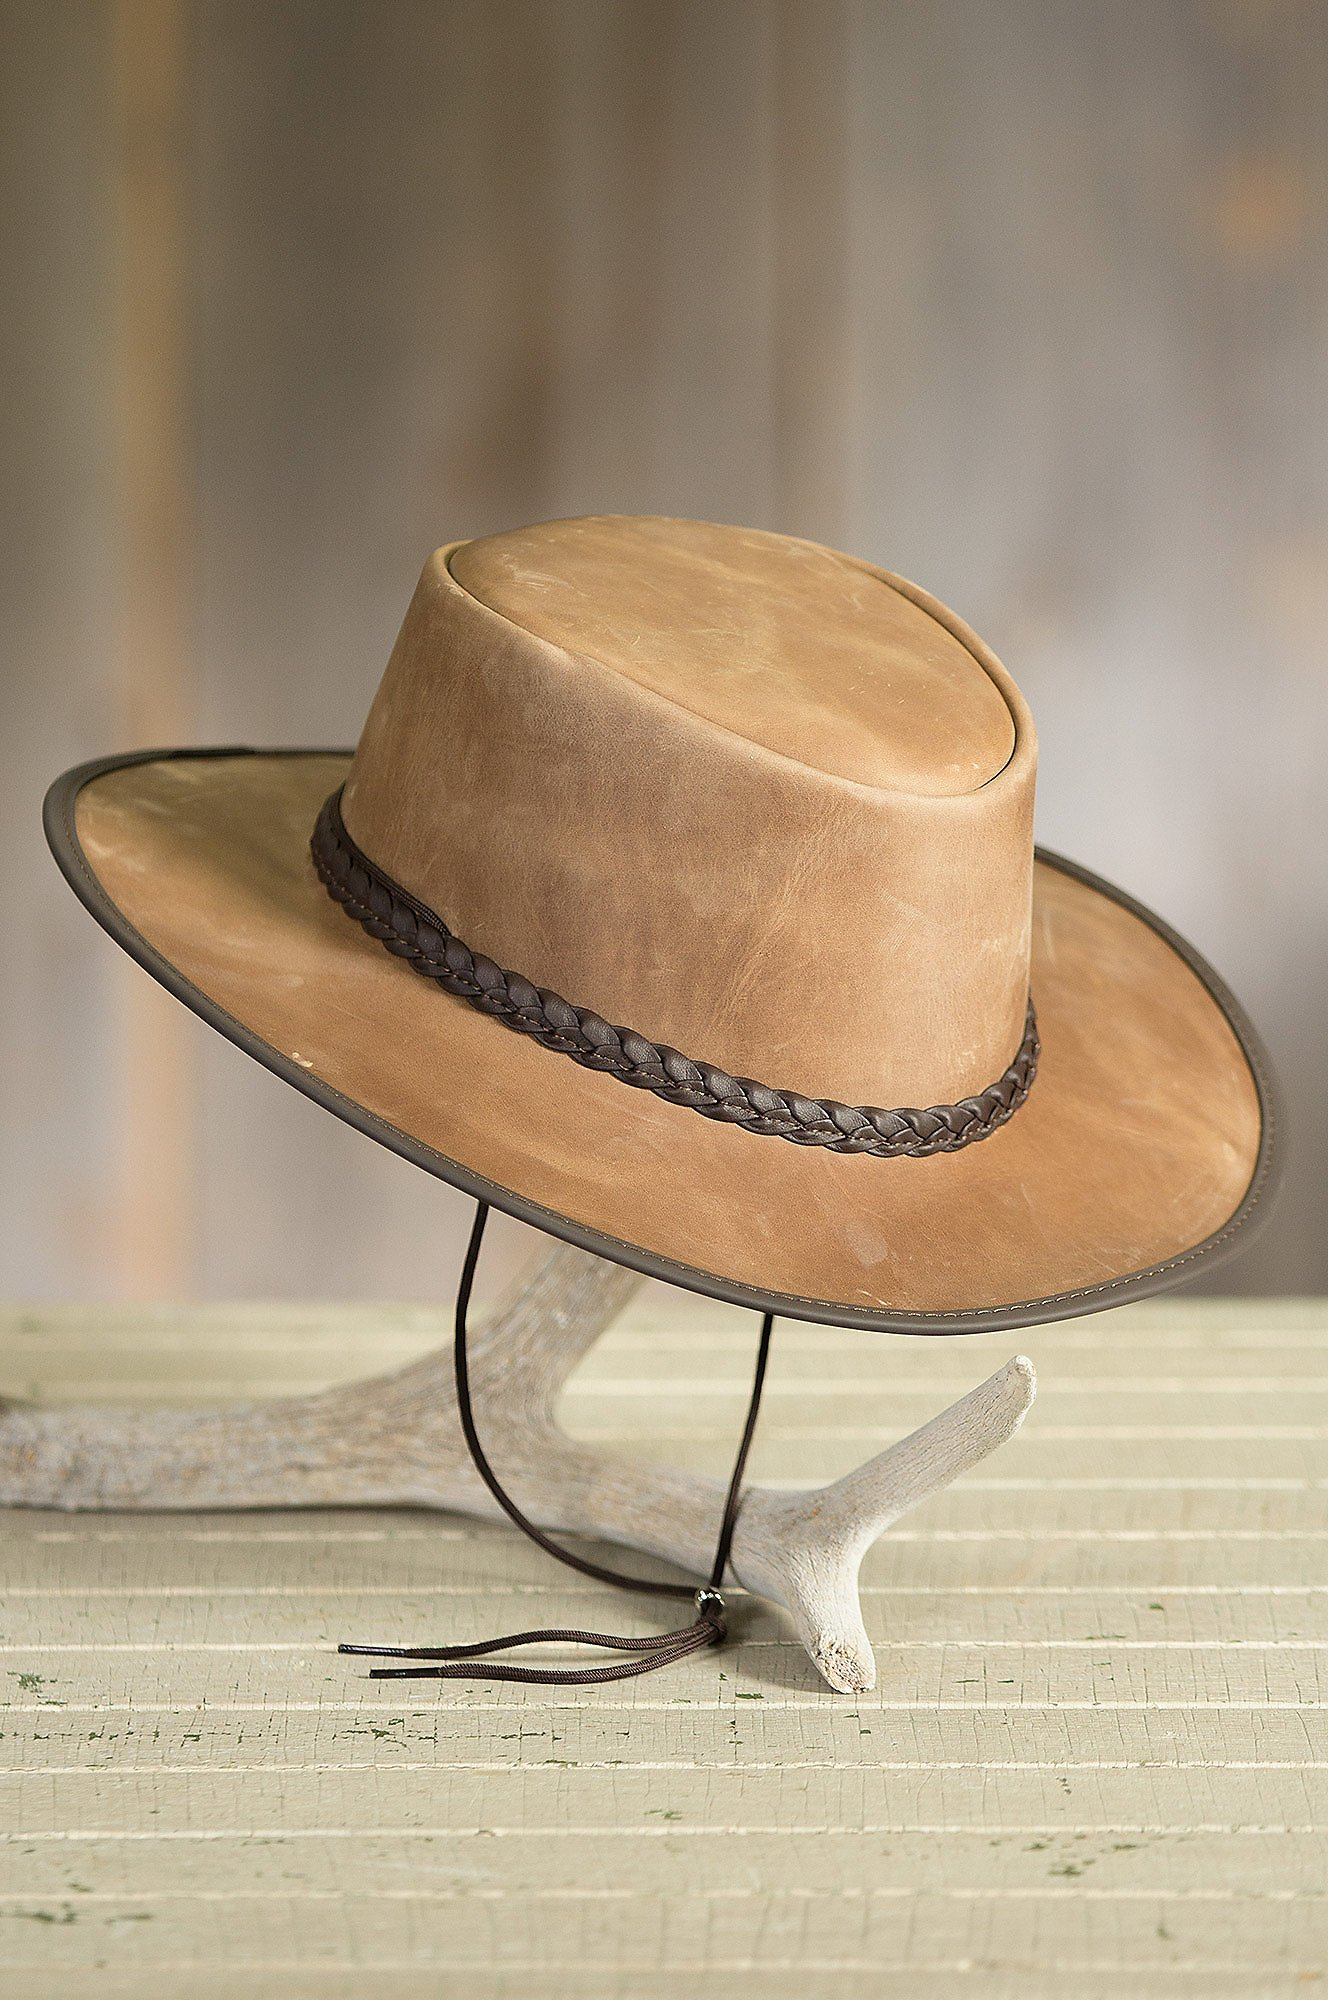 Bravo Leather Cowboy Hat, Pecan, Size XL (7 1/2-7 5/8) by Overland Sheepskin Co (Image #3)